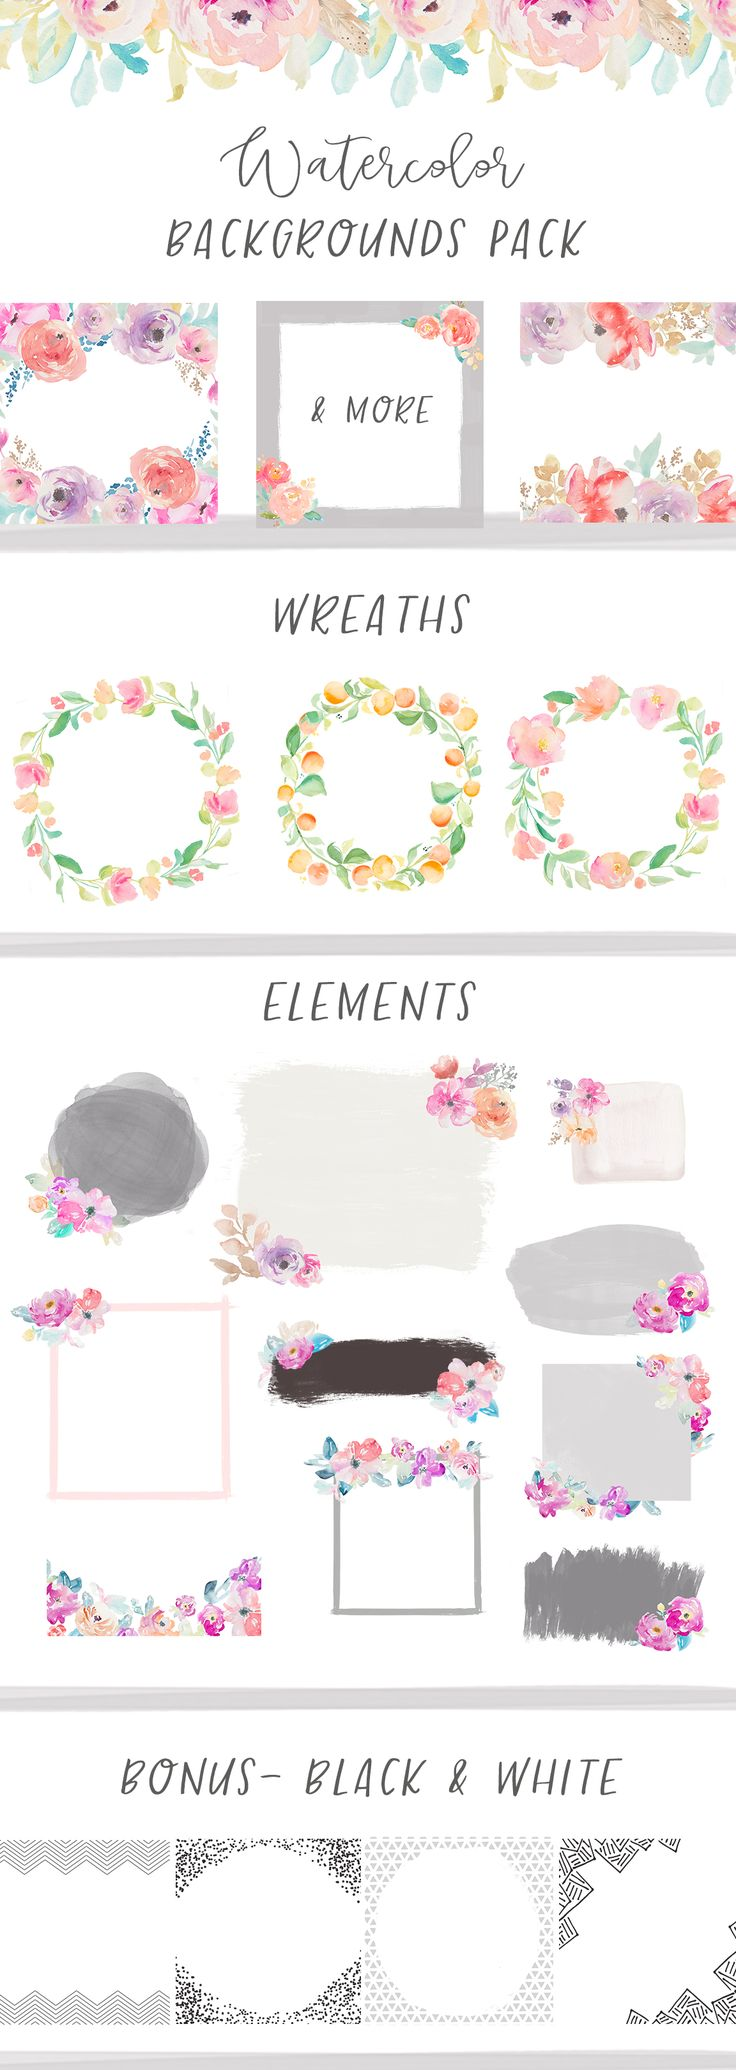 Introducing the Watercolor Backgrounds Mega Pack. Included in this download are tons of hand painted floral elements, background borders, frames, and more. Read below to see just what's included in this mega awesome mega pack.